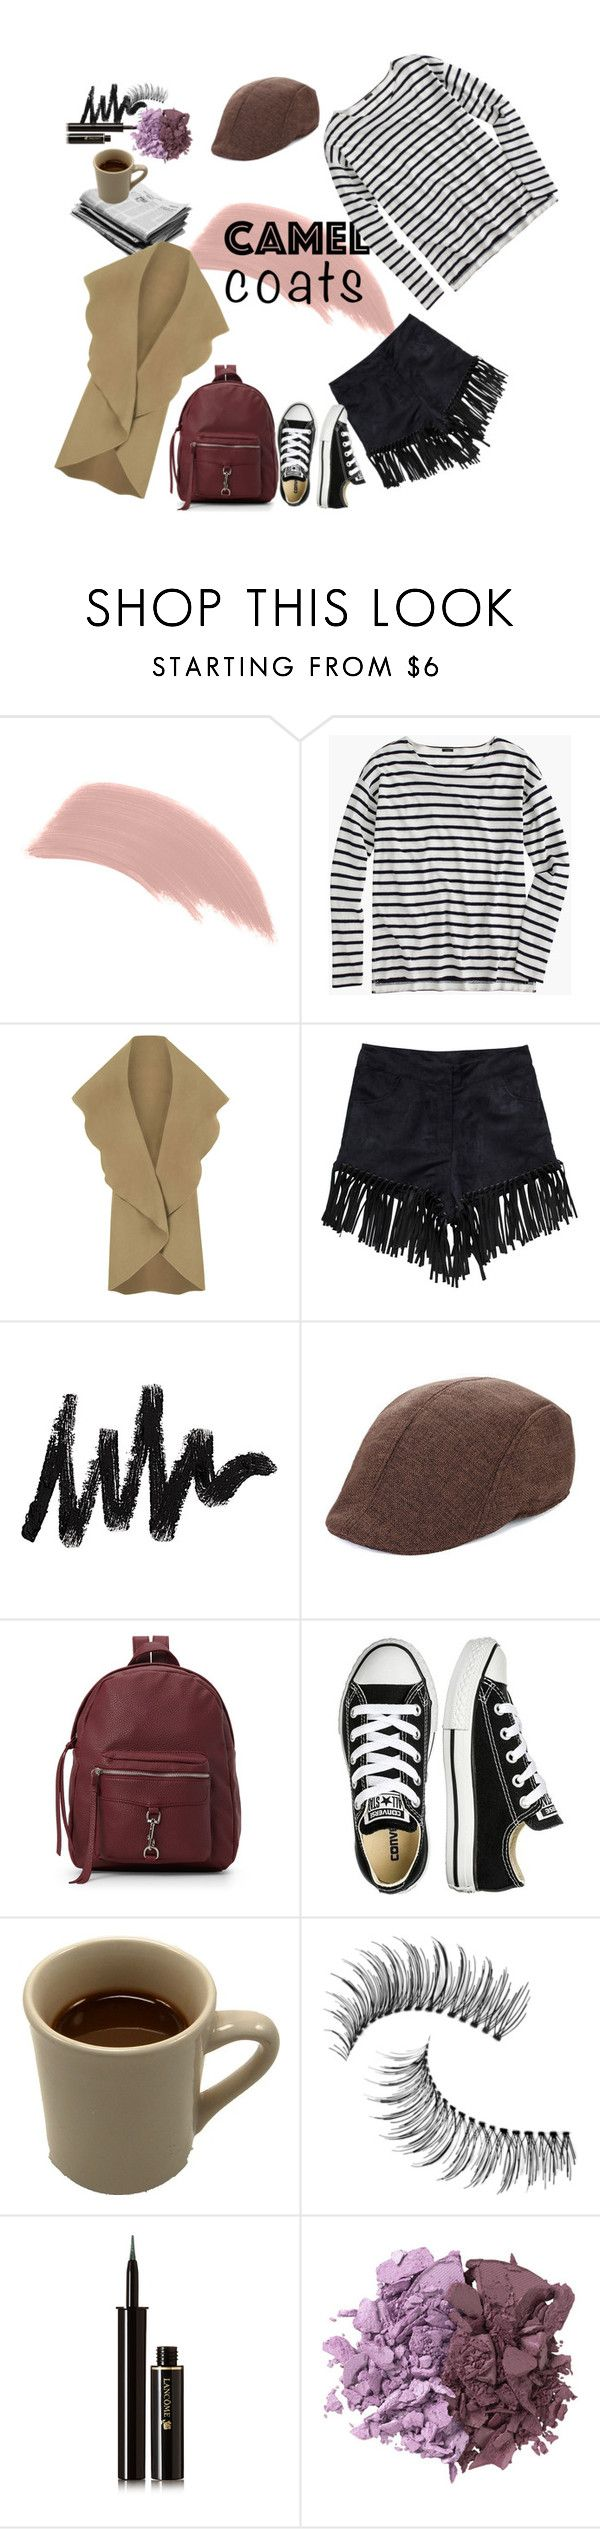 """Camel Coat Contest"" by nimas on Polyvore featuring Jane Iredale, J.Crew, WearAll, NLY Trend, IMoshion, Converse, Trish McEvoy, Lancôme and Osmosis Colour"